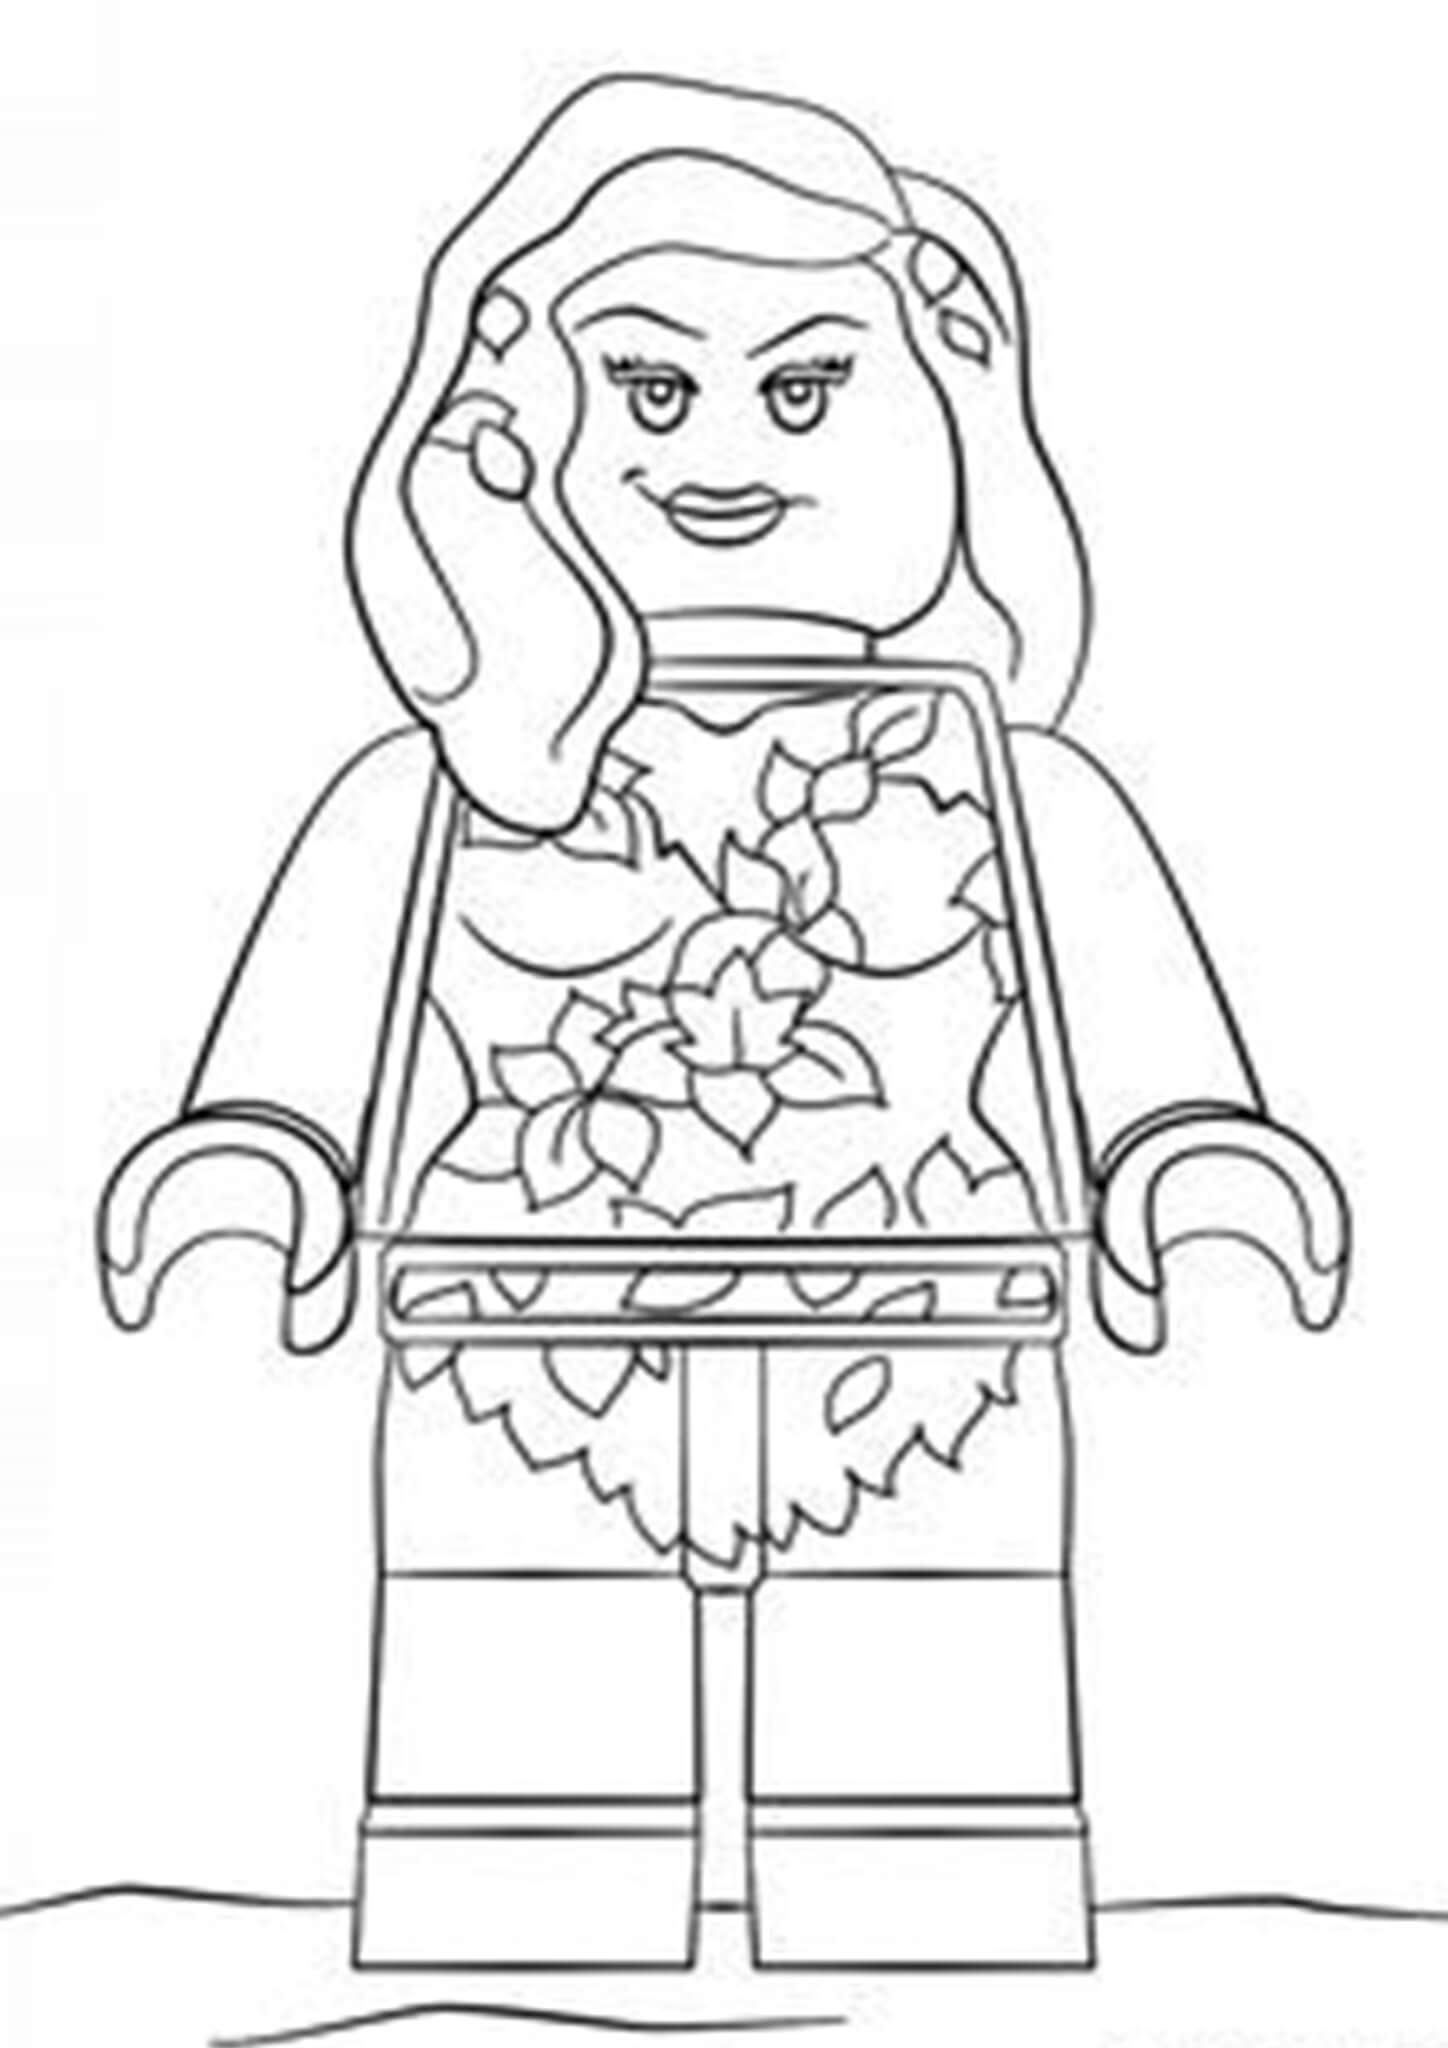 Free Easy To Print Lego Batman Coloring Pages Lego Coloring Pages Batman Coloring Pages Lego Coloring